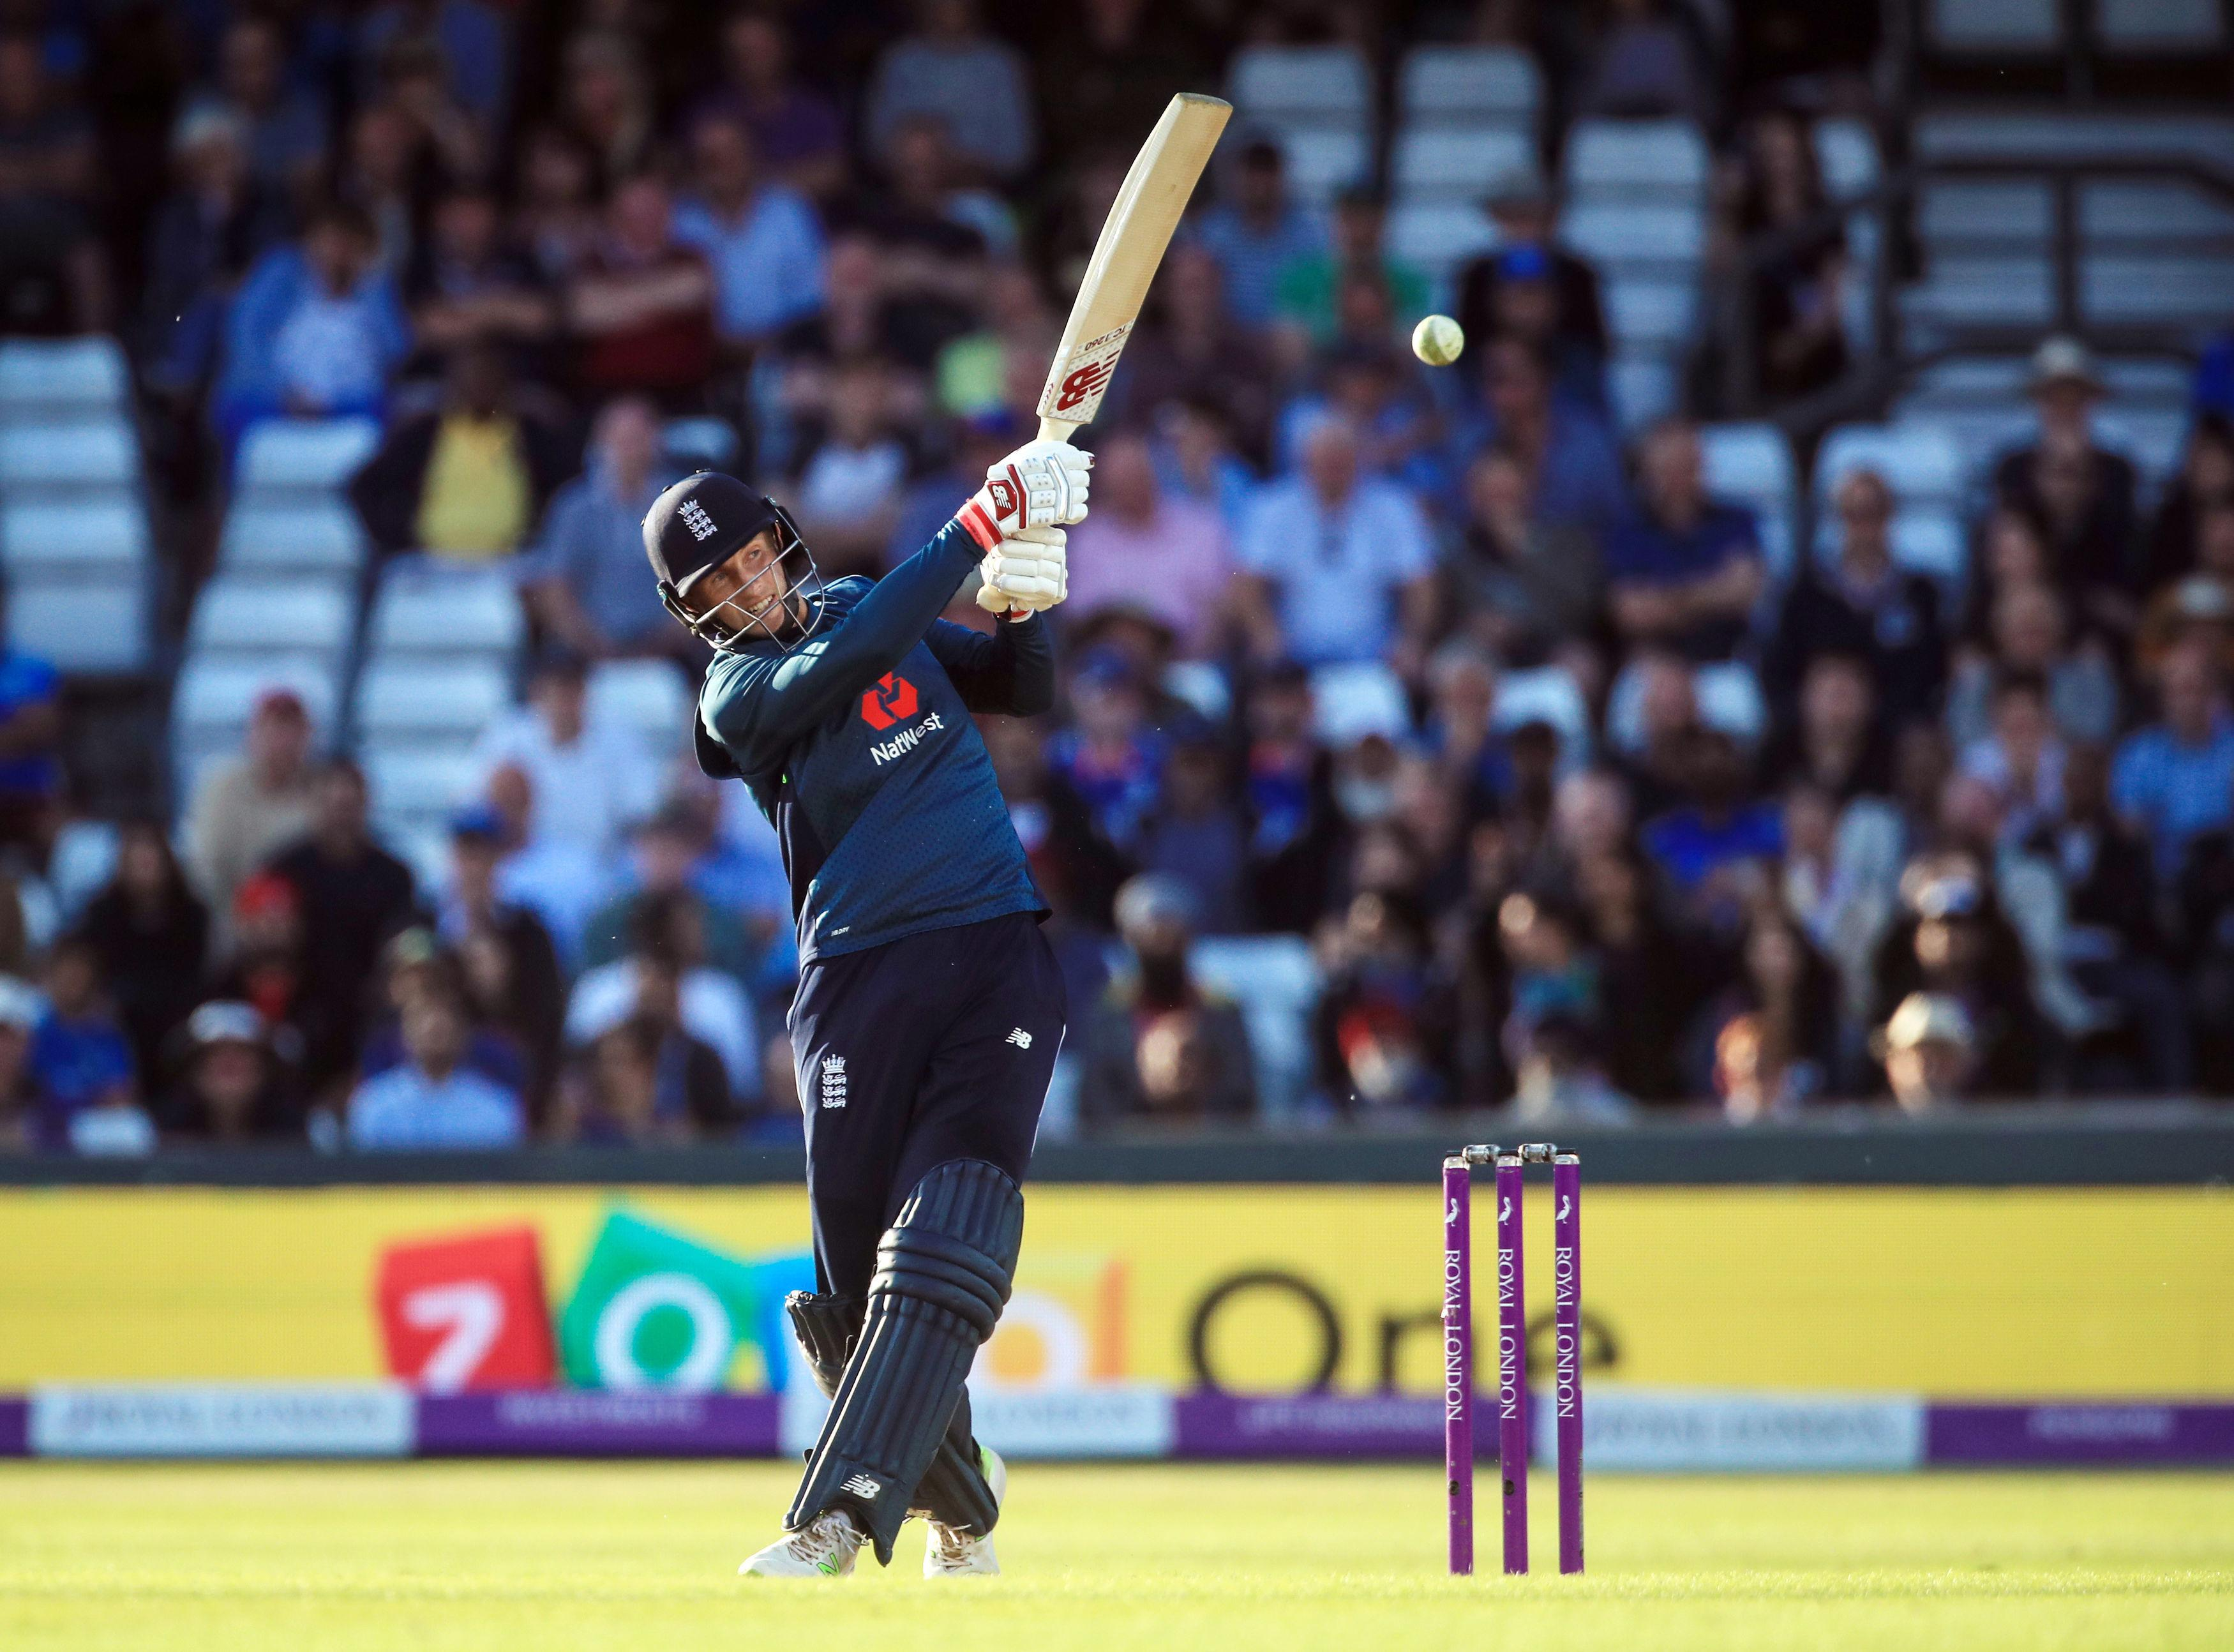 Root hits out on his way to 100 not out on his home ground